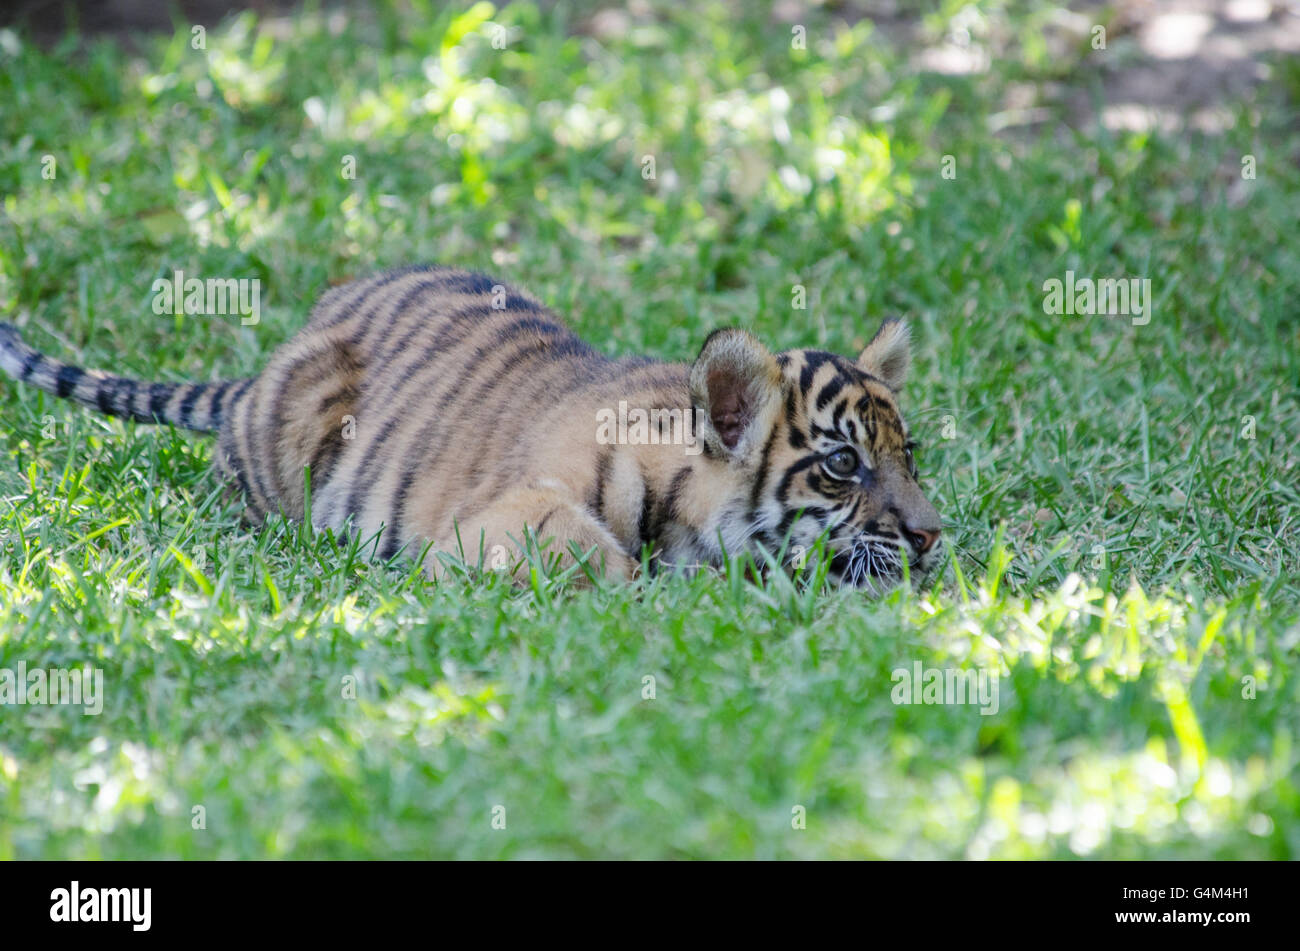 Three months old Sumatran tiger cub playing in the grass in Australia Zoo Stock Photo